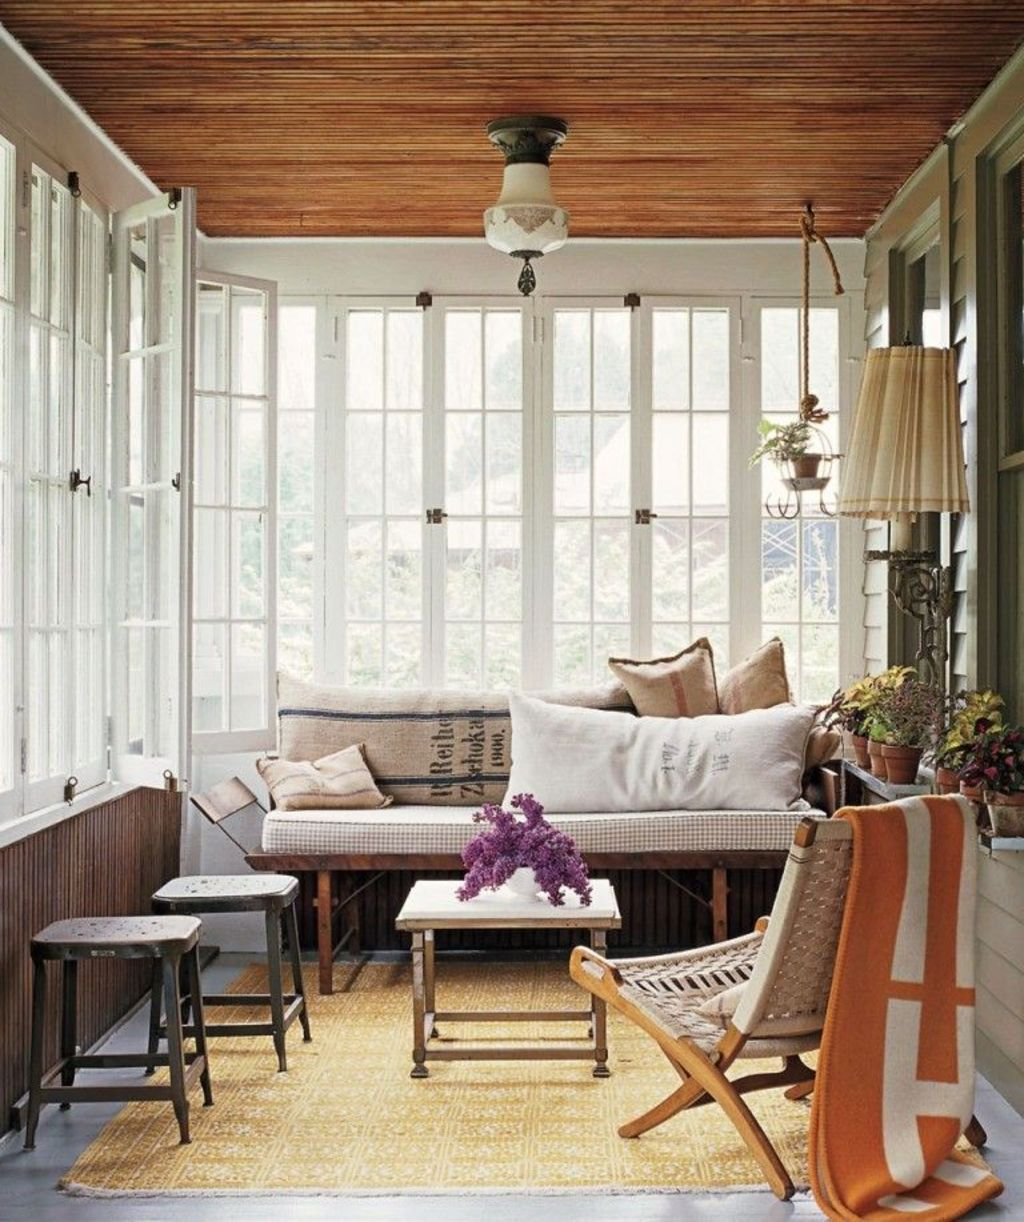 Most Popular Affordable Sunroom Design Ideas for 2019 Part 9